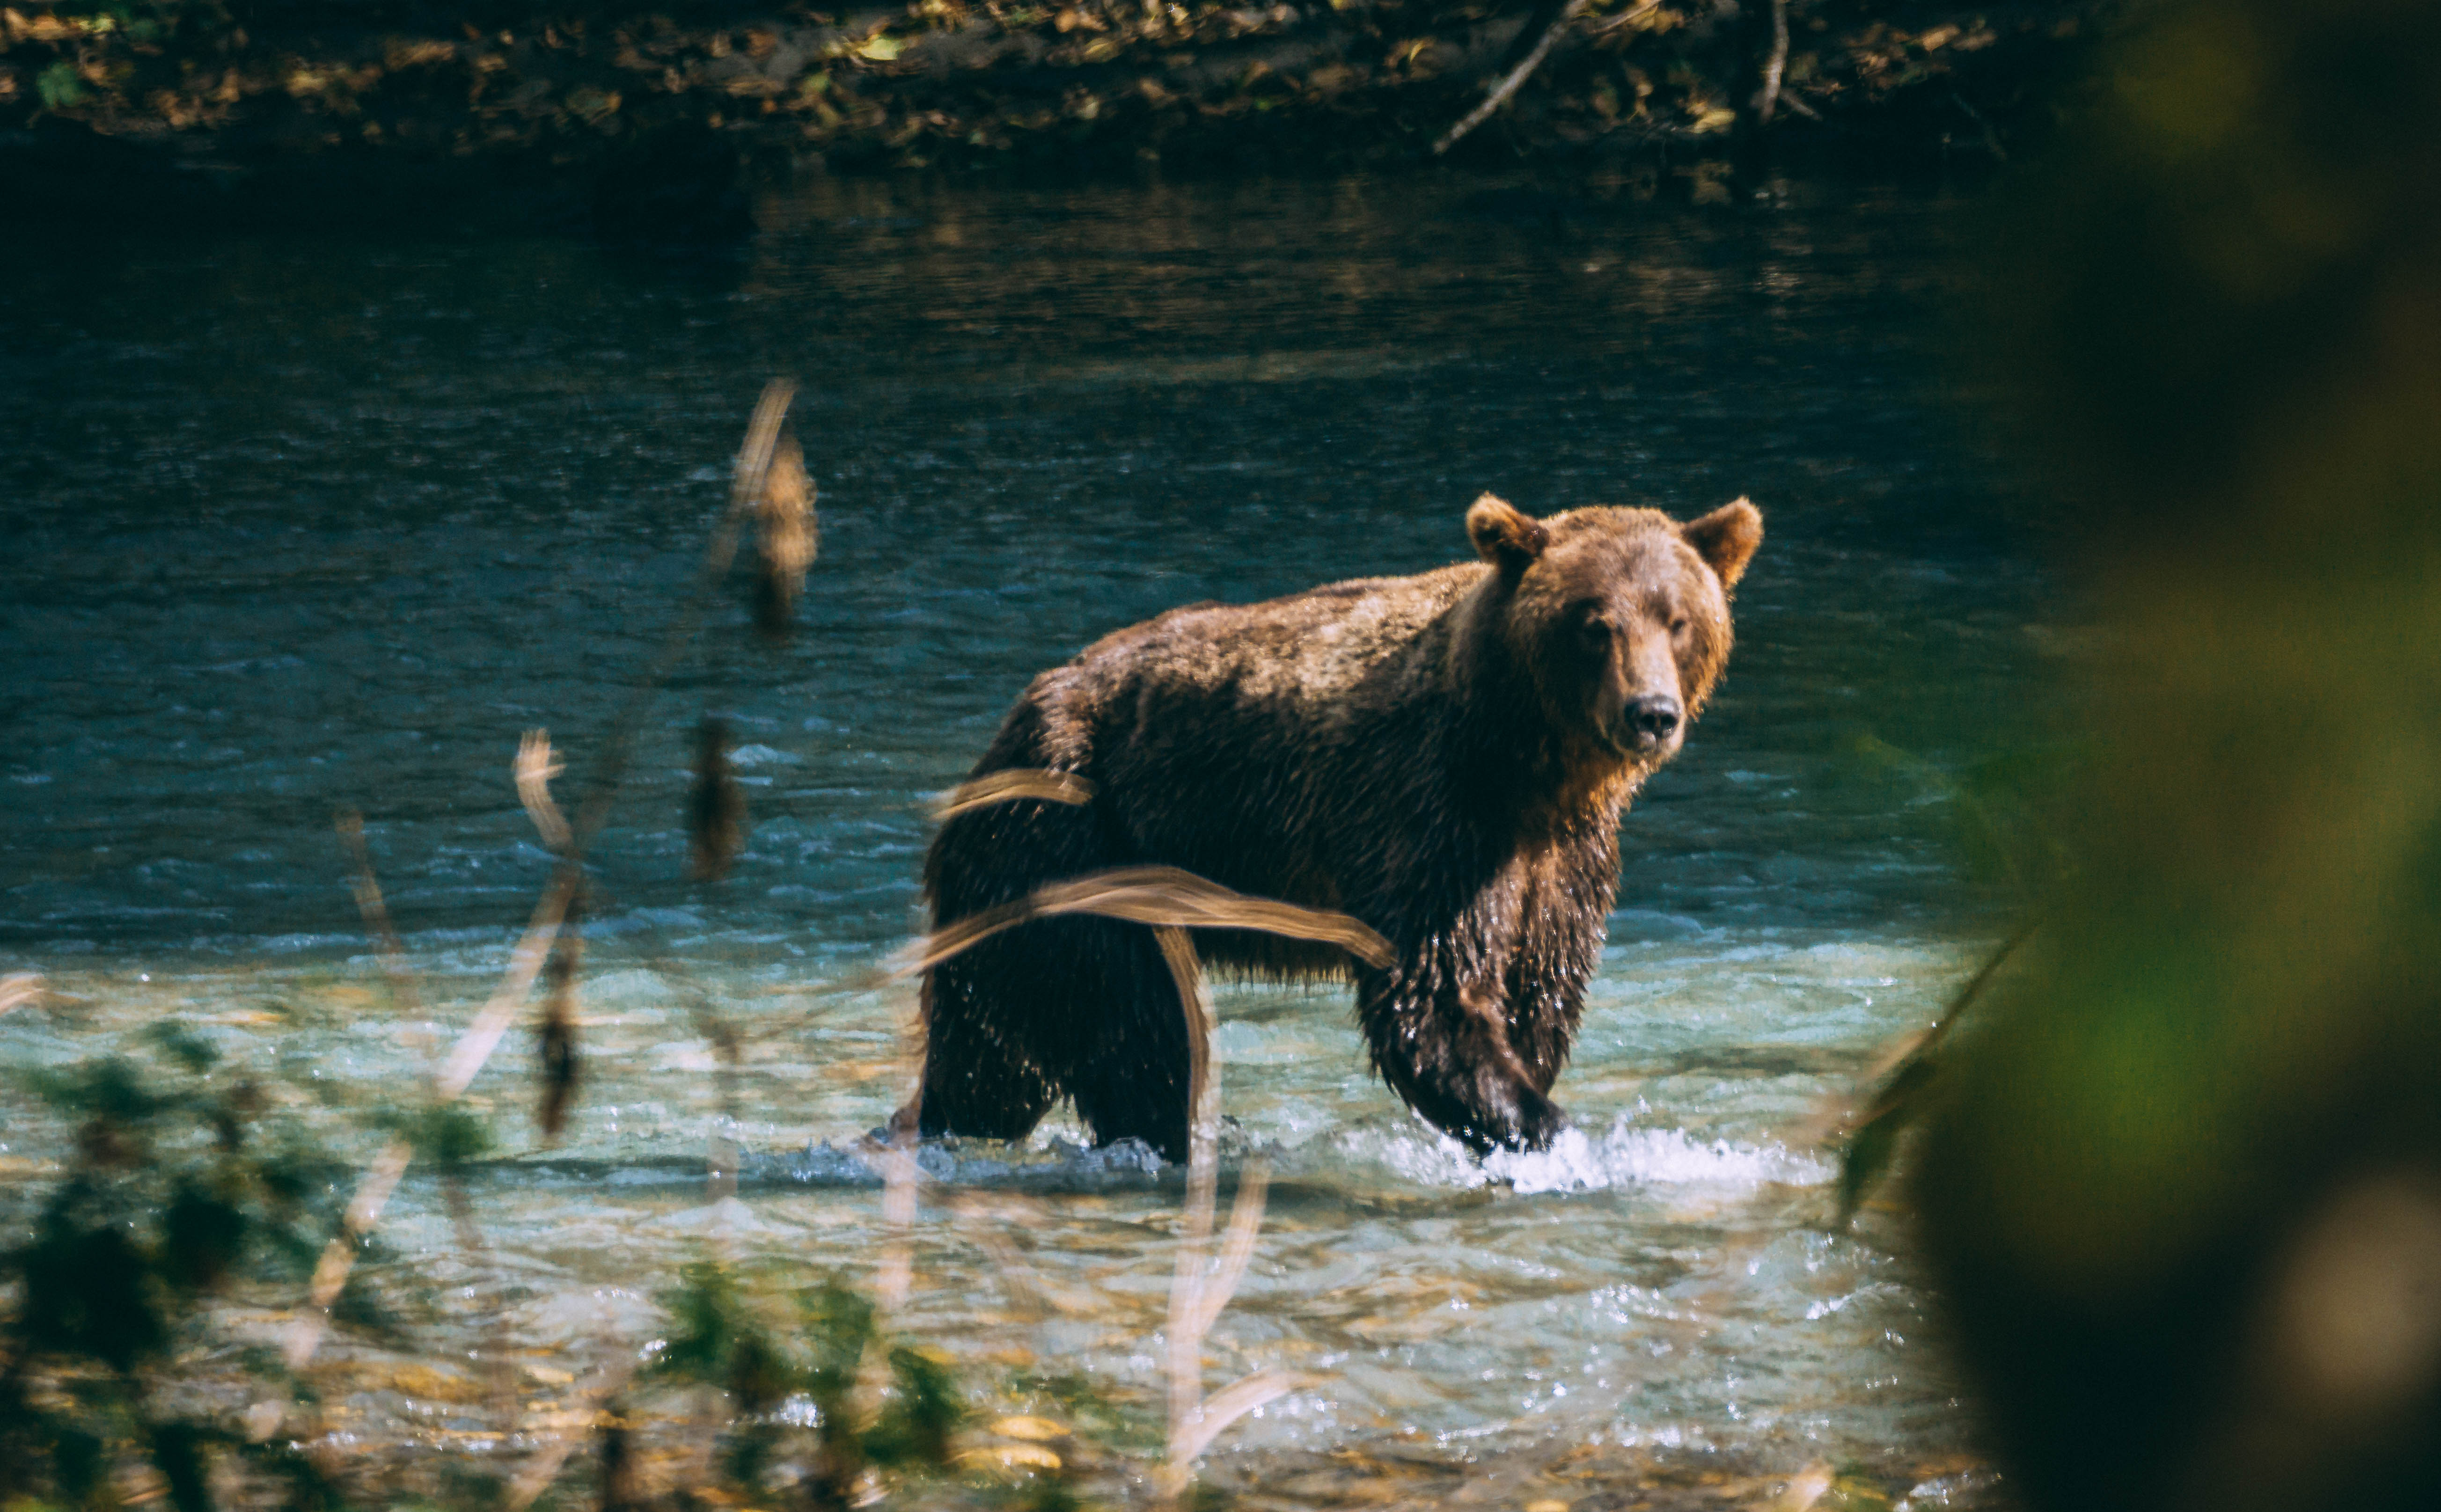 https://res.cloudinary.com/pacific-coastal-cruises-and-tours/image/upload/v1600896184/GrizzlyBear_b0wthw.jpg